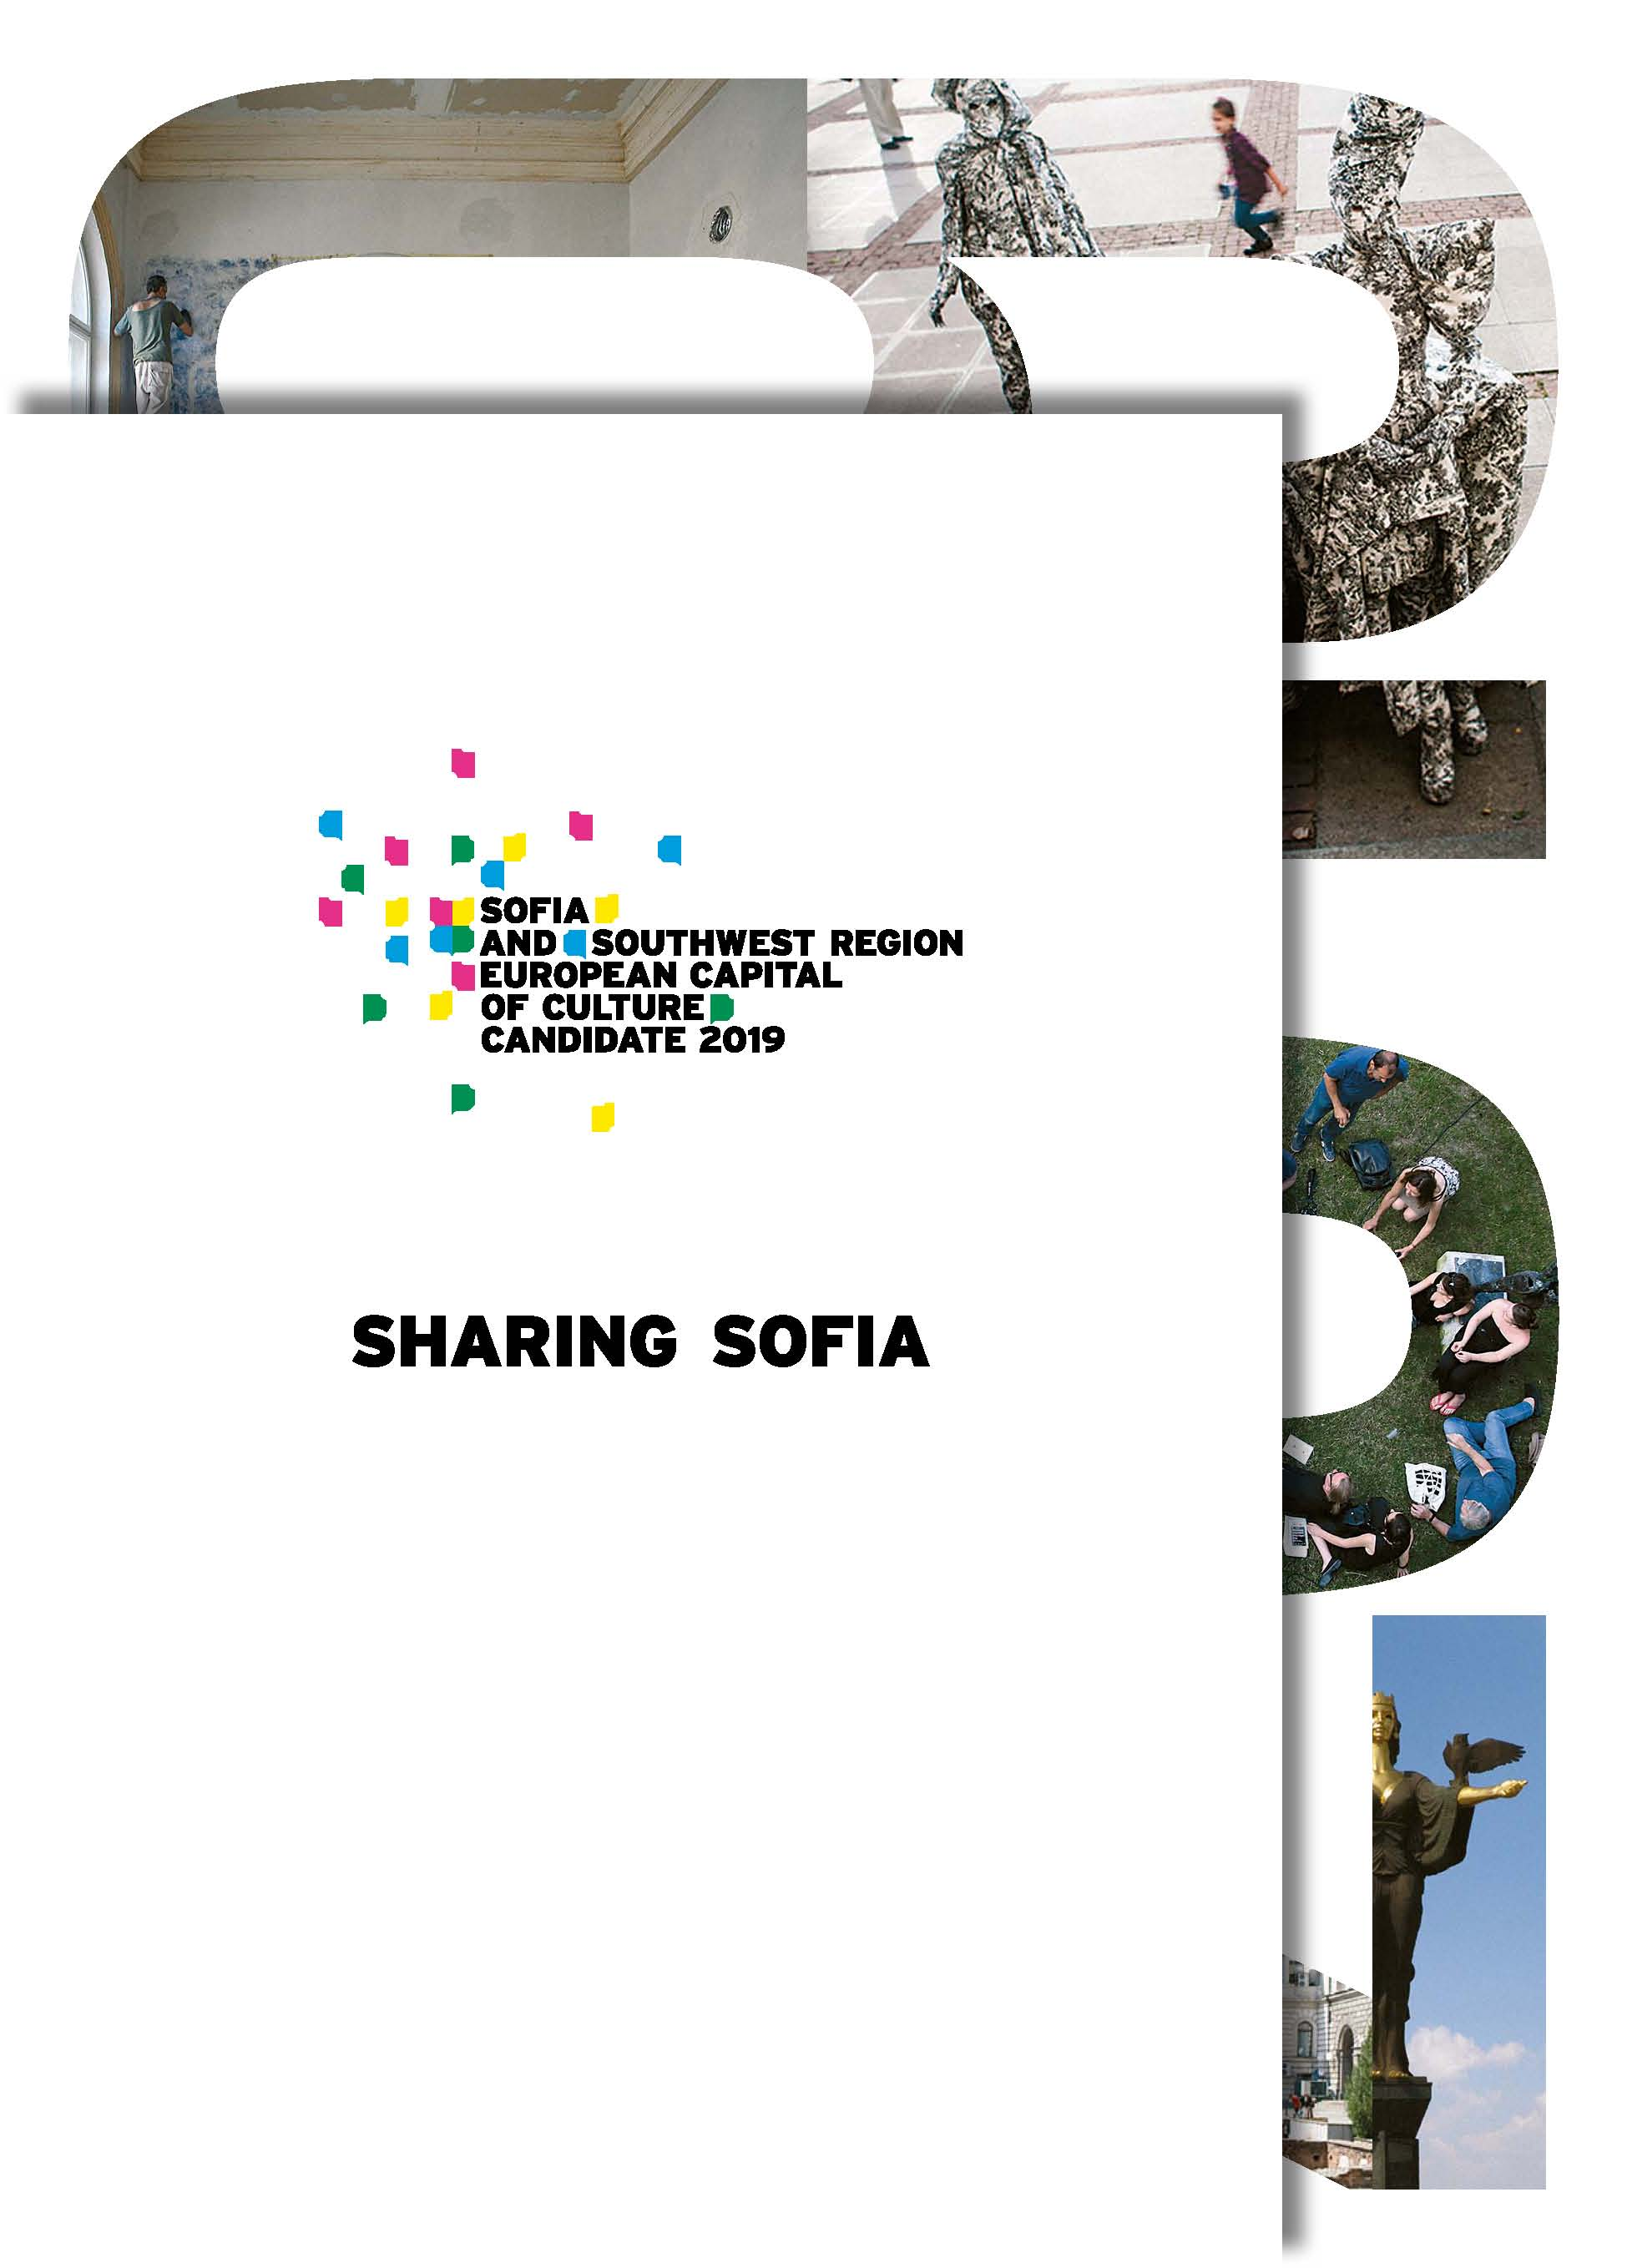 Sharing Sofia brochure